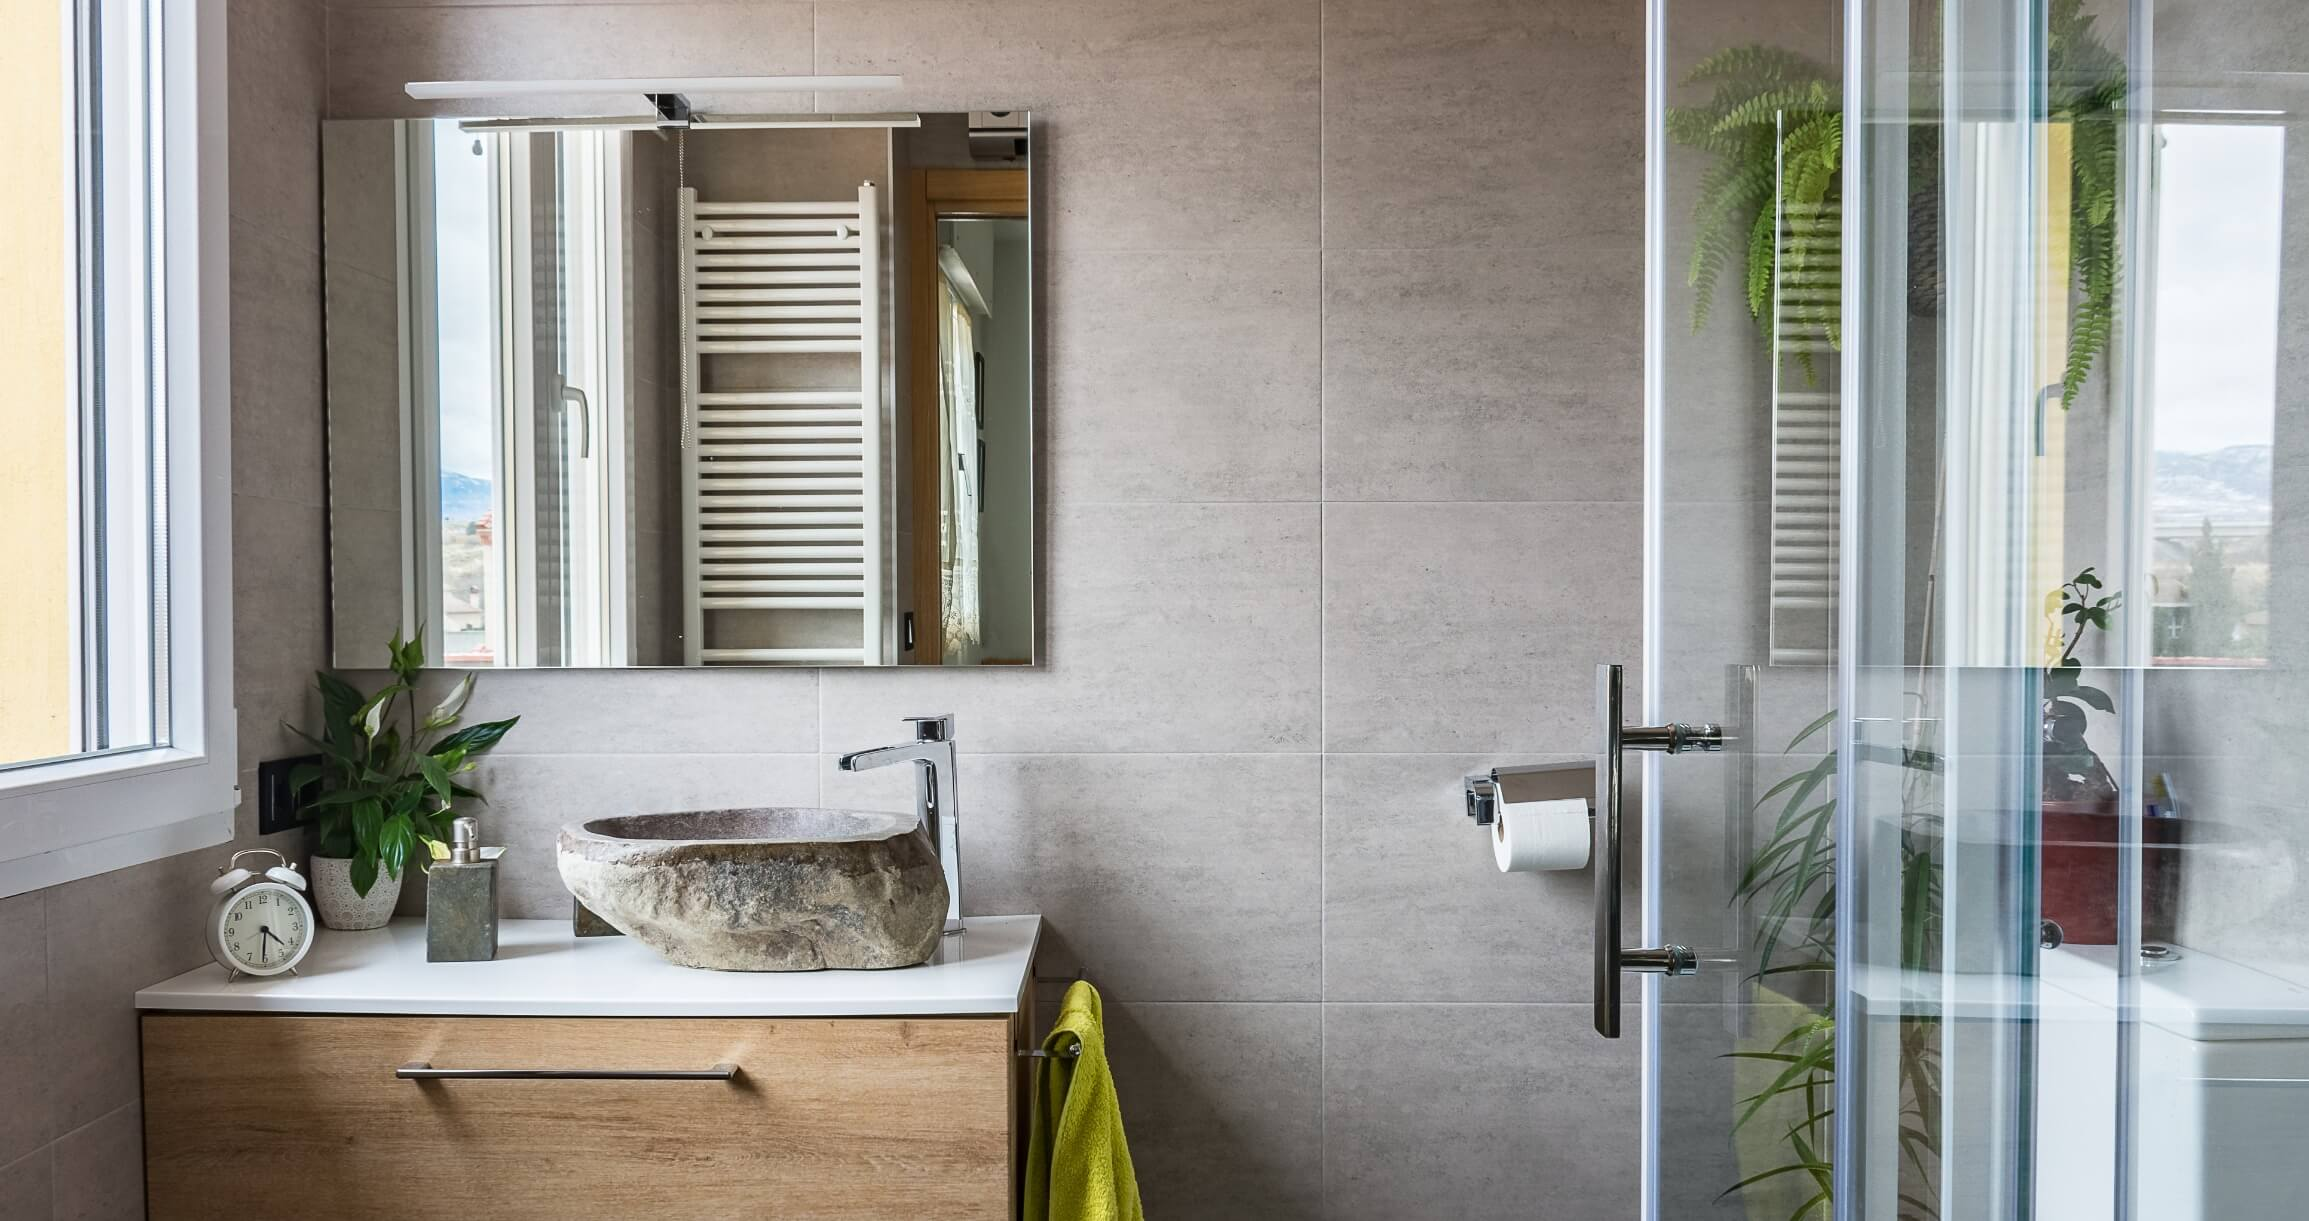 Small-Space Hacks For Bathroom Remodels